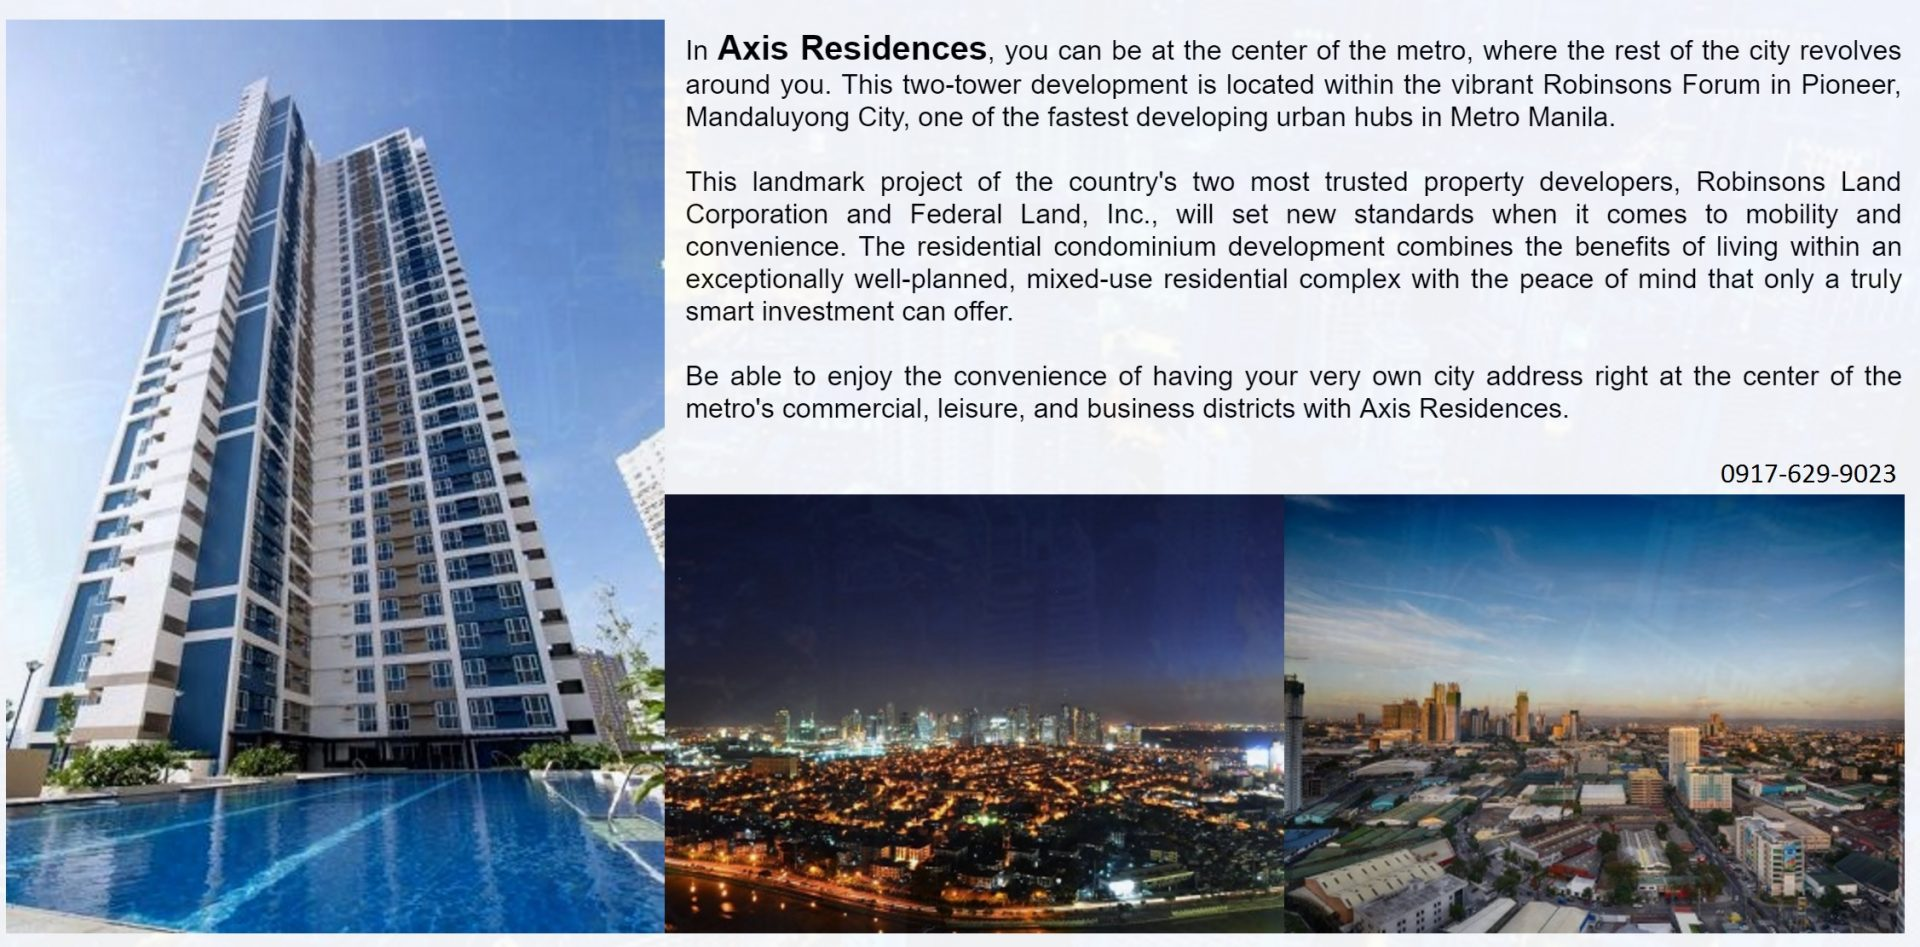 Axis Residences Condo For Sale in Pioneer Boni Mandaluyong City